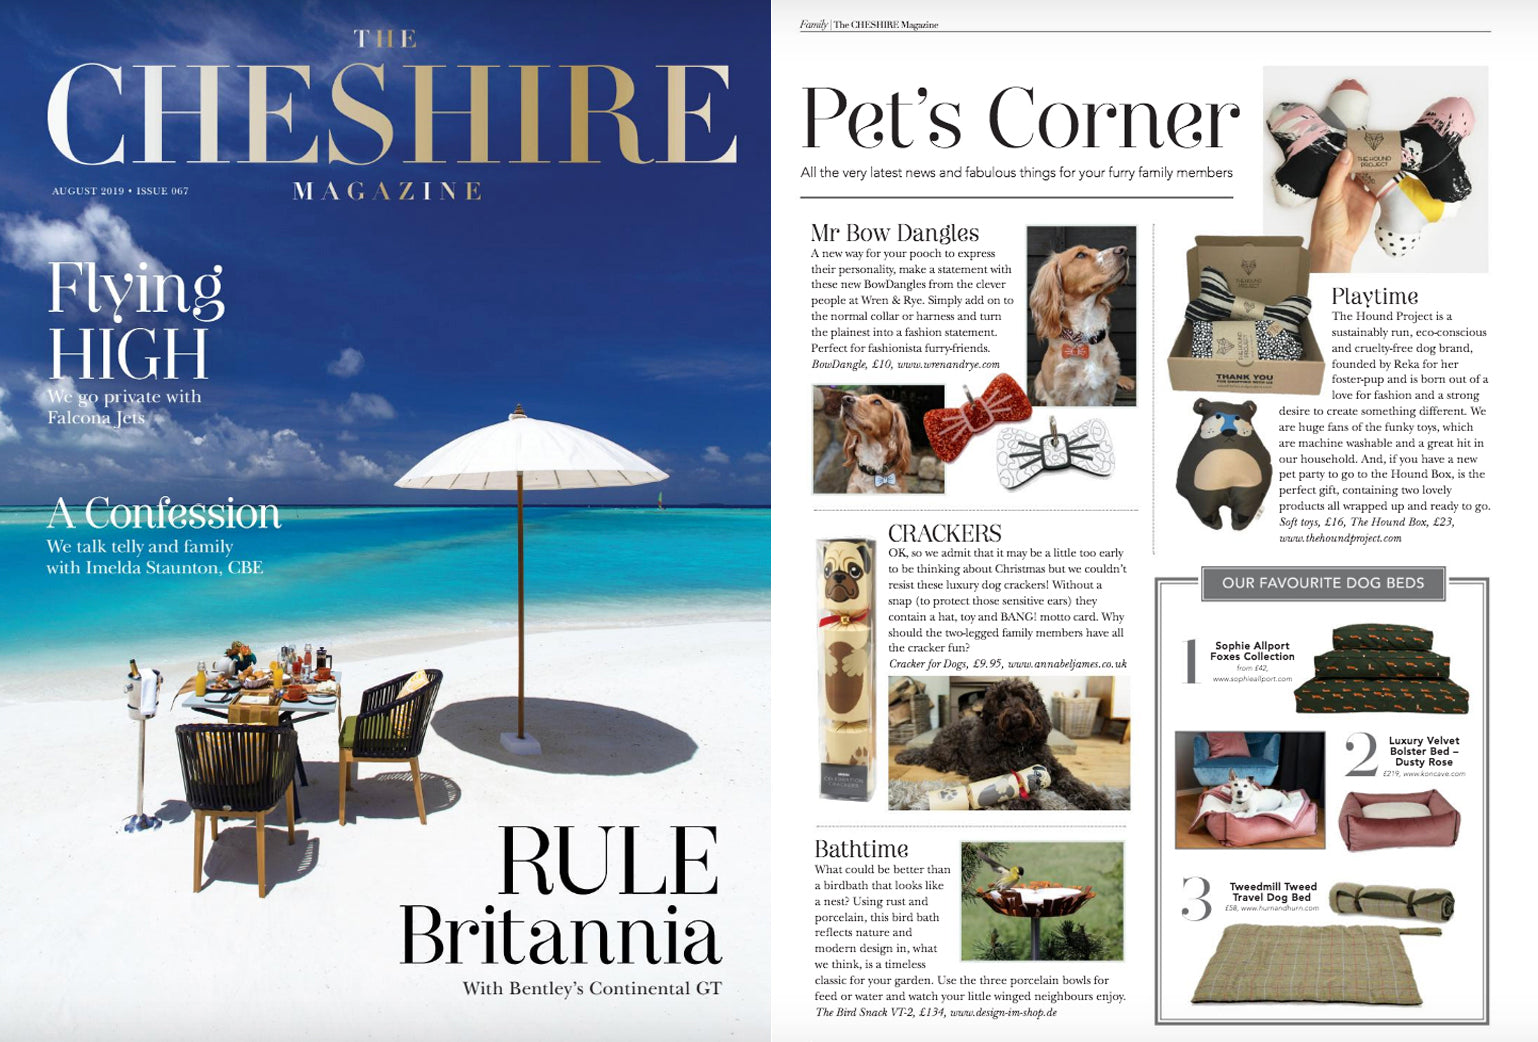 Wren & Rye - Press The Cheshire Magazine August September Issue